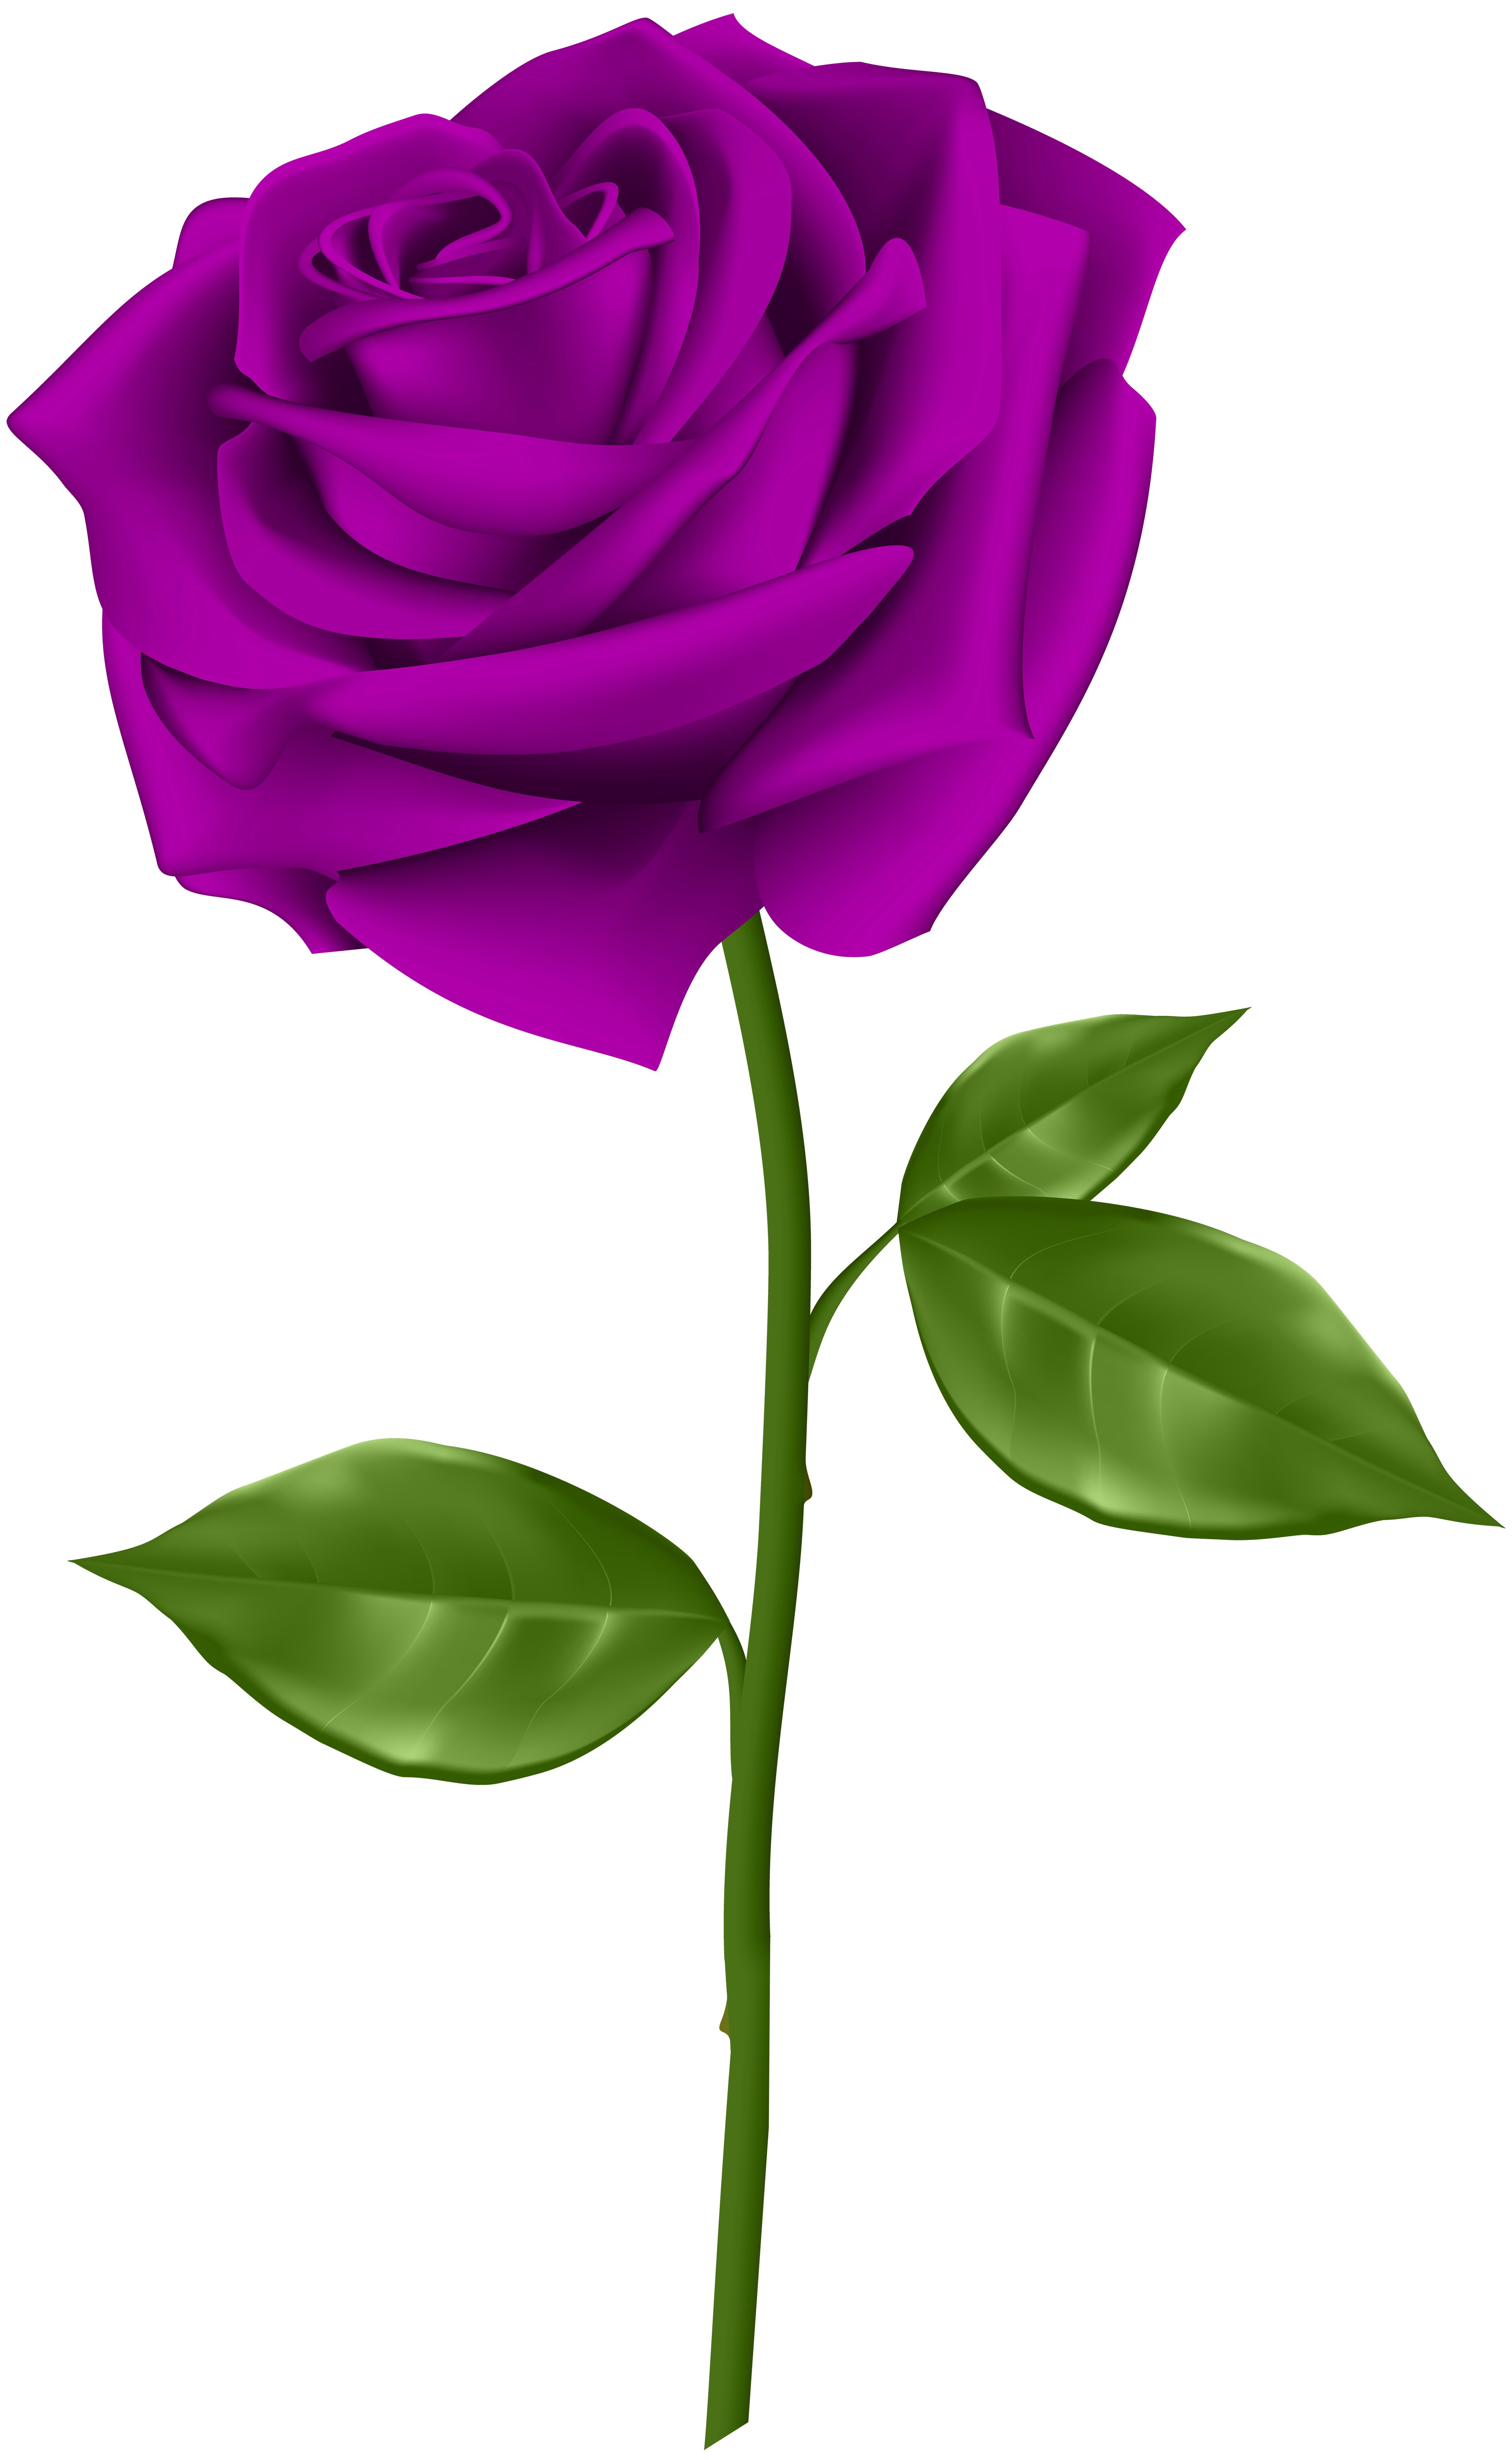 Violet Rose Png - Pin by Zosim Maksimishin on Живопись   Red roses, Red rose png ...